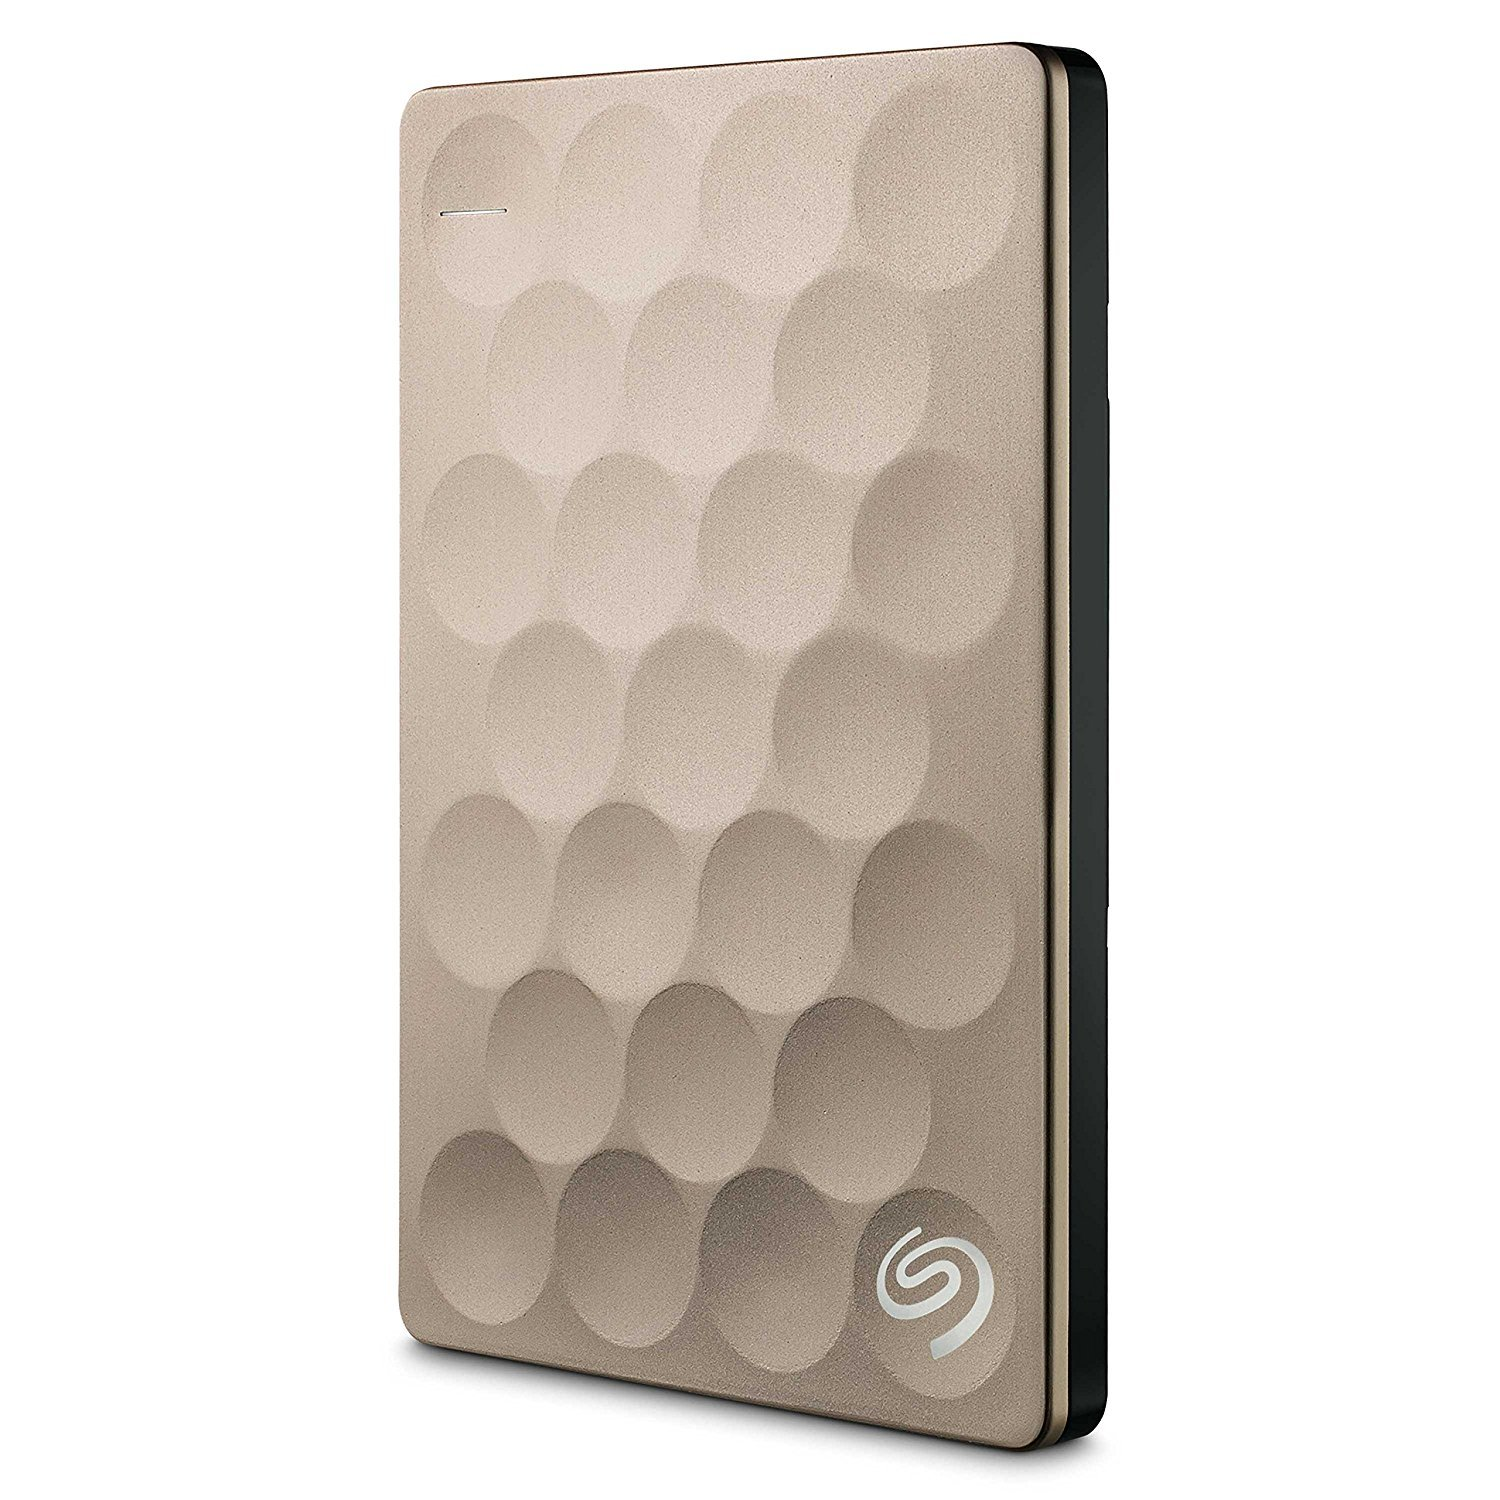 Seagate Backup Plus Ultra Slim 2TB Portable External Hard Drive, USB 3.0 Platinum + 2mo Adobe CC Photography (STEH2000100)